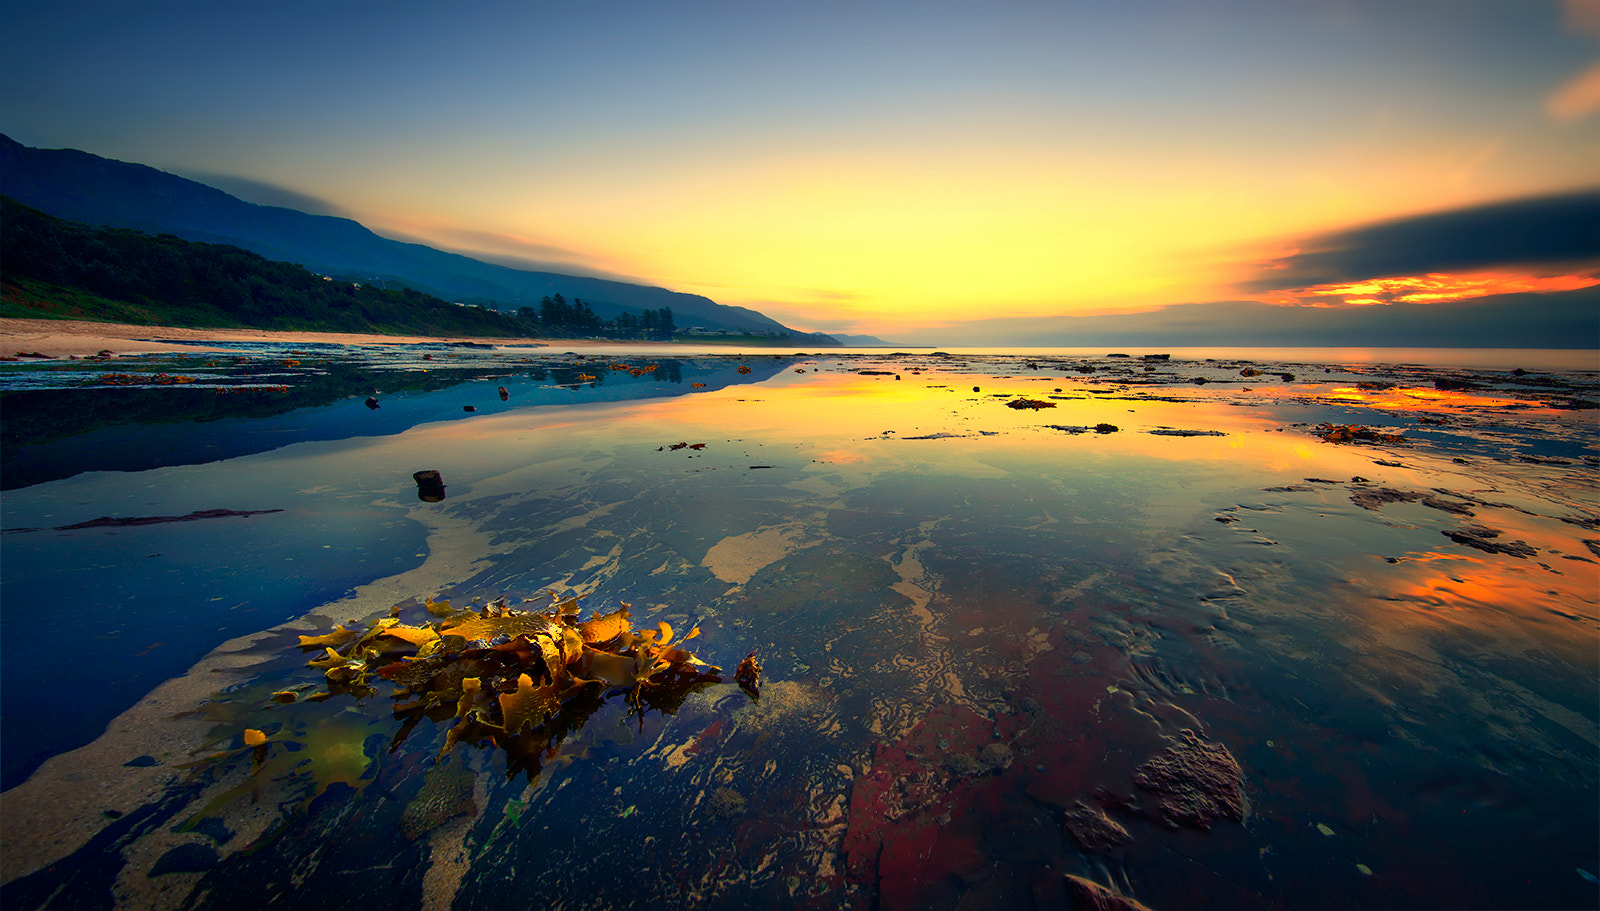 Photograph Golden seaweed by Goff Kitsawad on 500px